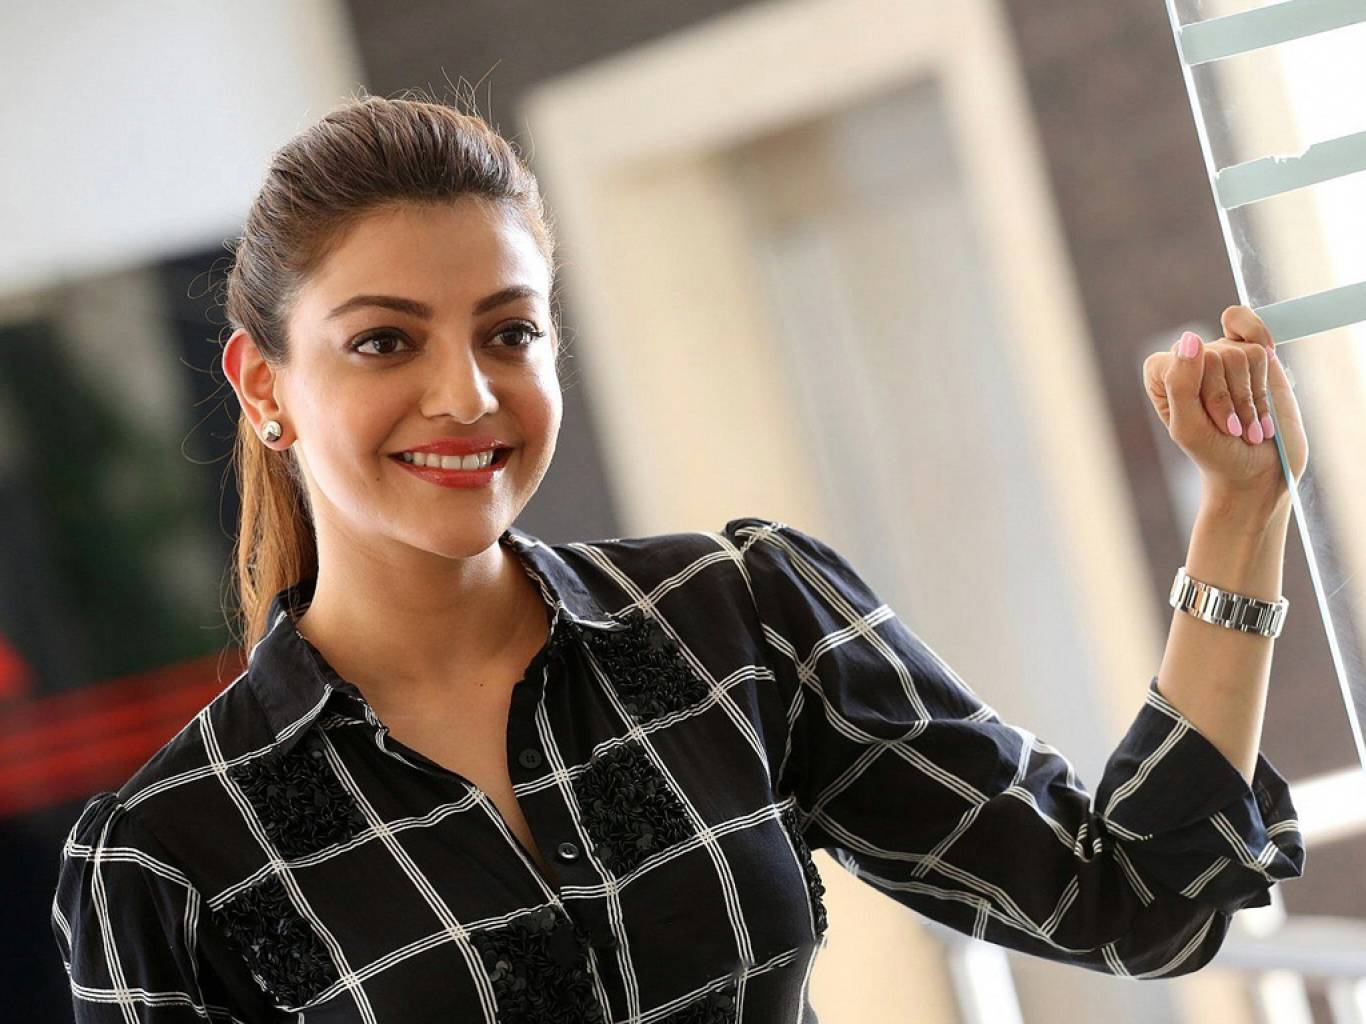 Kajal Aggarwal Wallpapers  IMAGES, GIF, ANIMATED GIF, WALLPAPER, STICKER FOR WHATSAPP & FACEBOOK